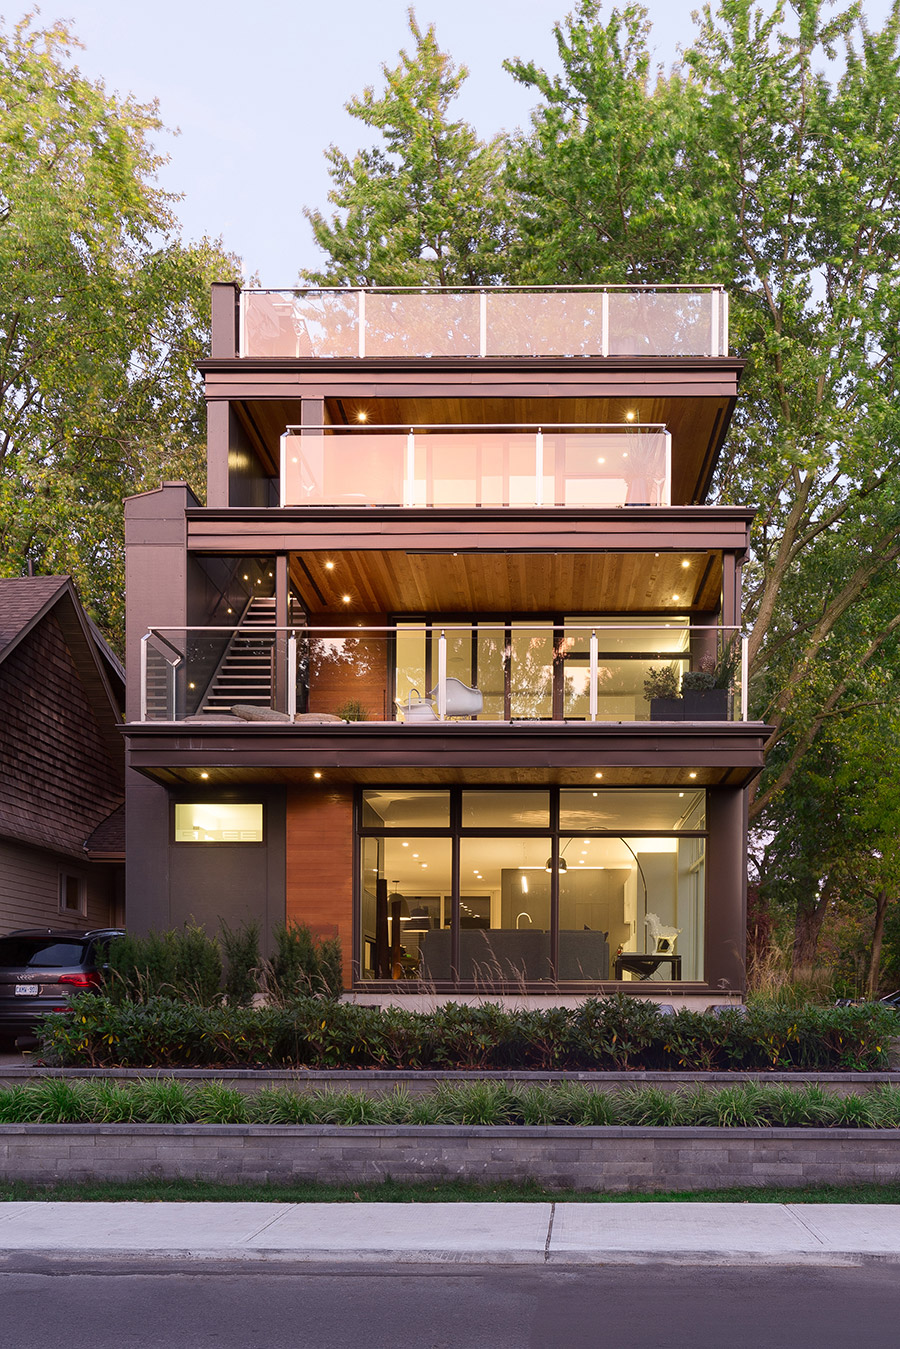 Toronto Beaches modern home with multiple balconies and large floor-to-ceiling windows